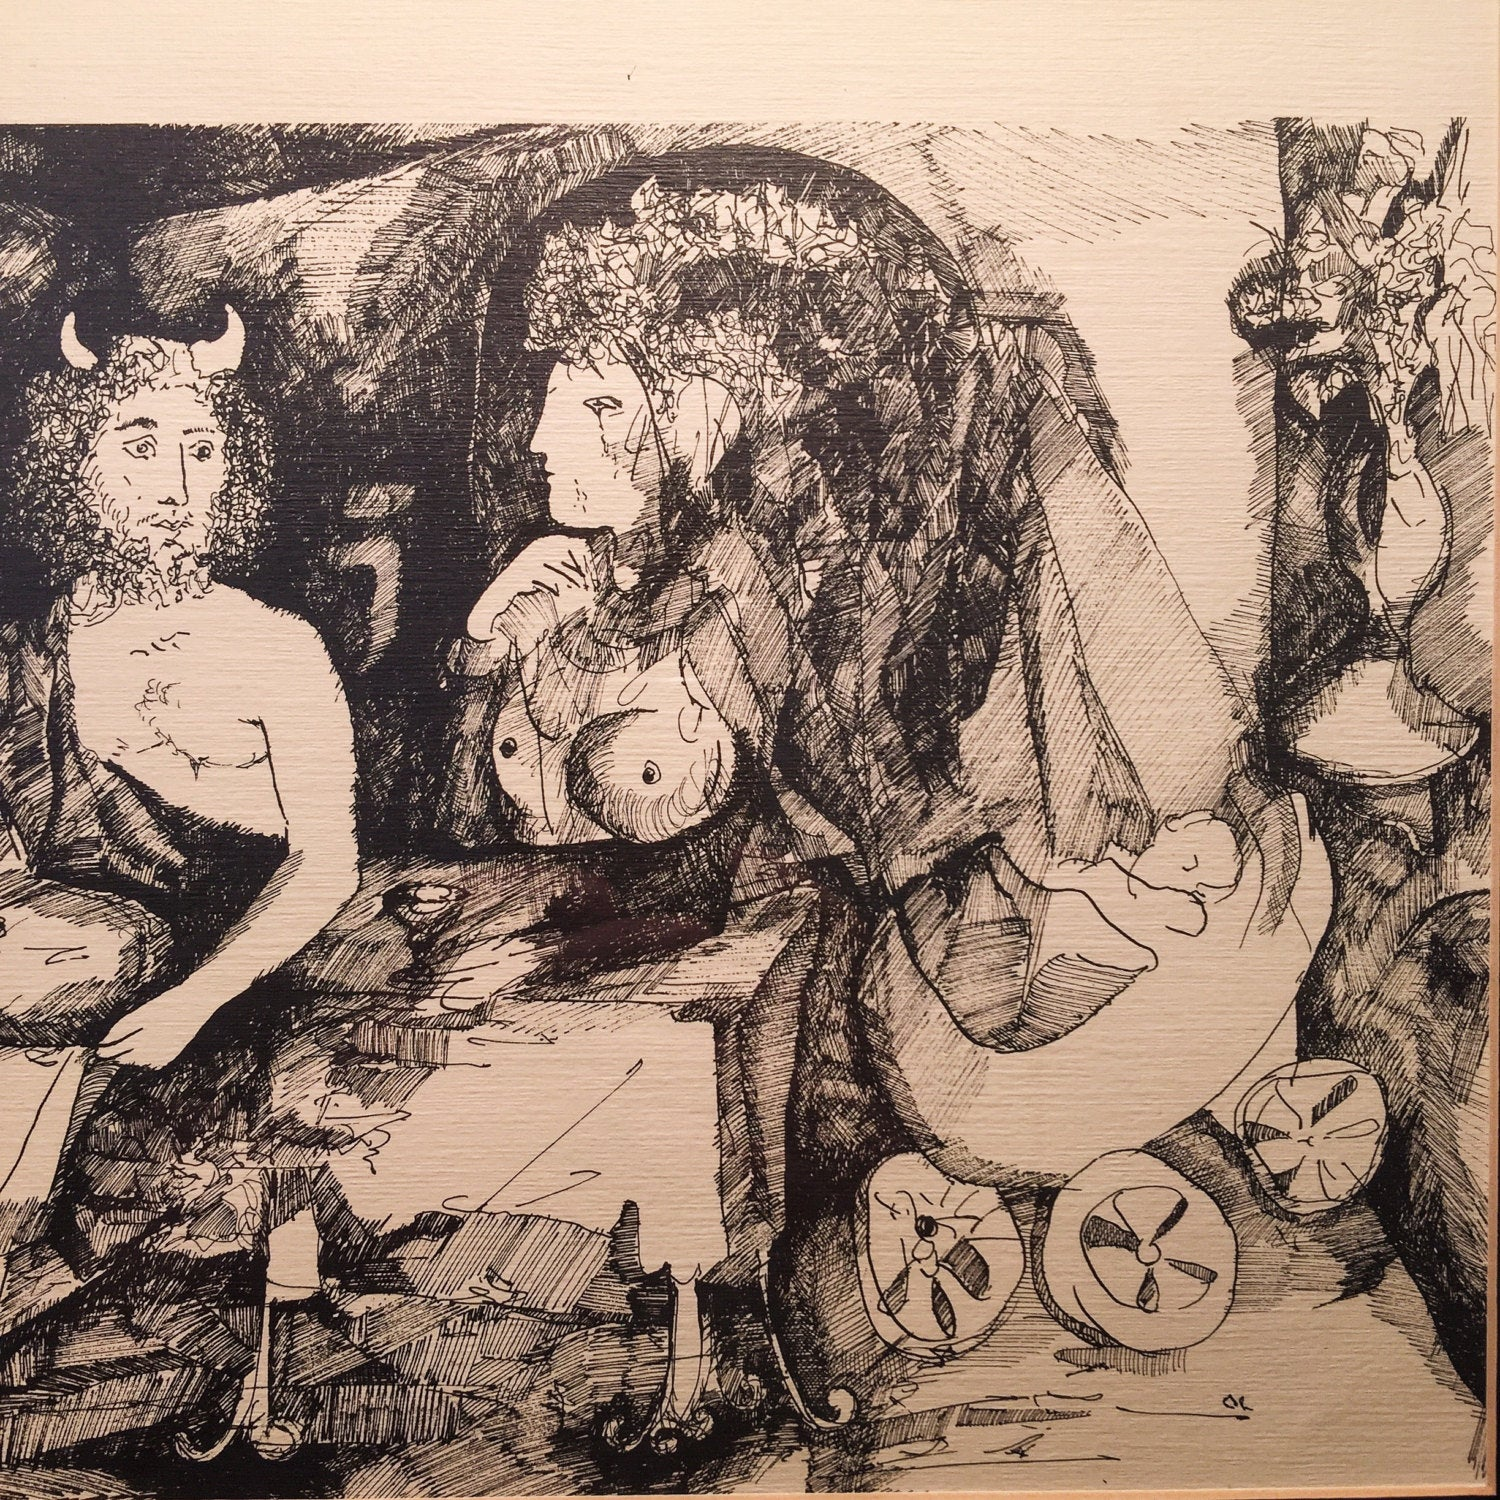 Ink Drawing of Satan, Wife and Baby - Macabre art - Signed - Mystery Artist - Surreal Vintage - Macabre oddity - Morbid Art